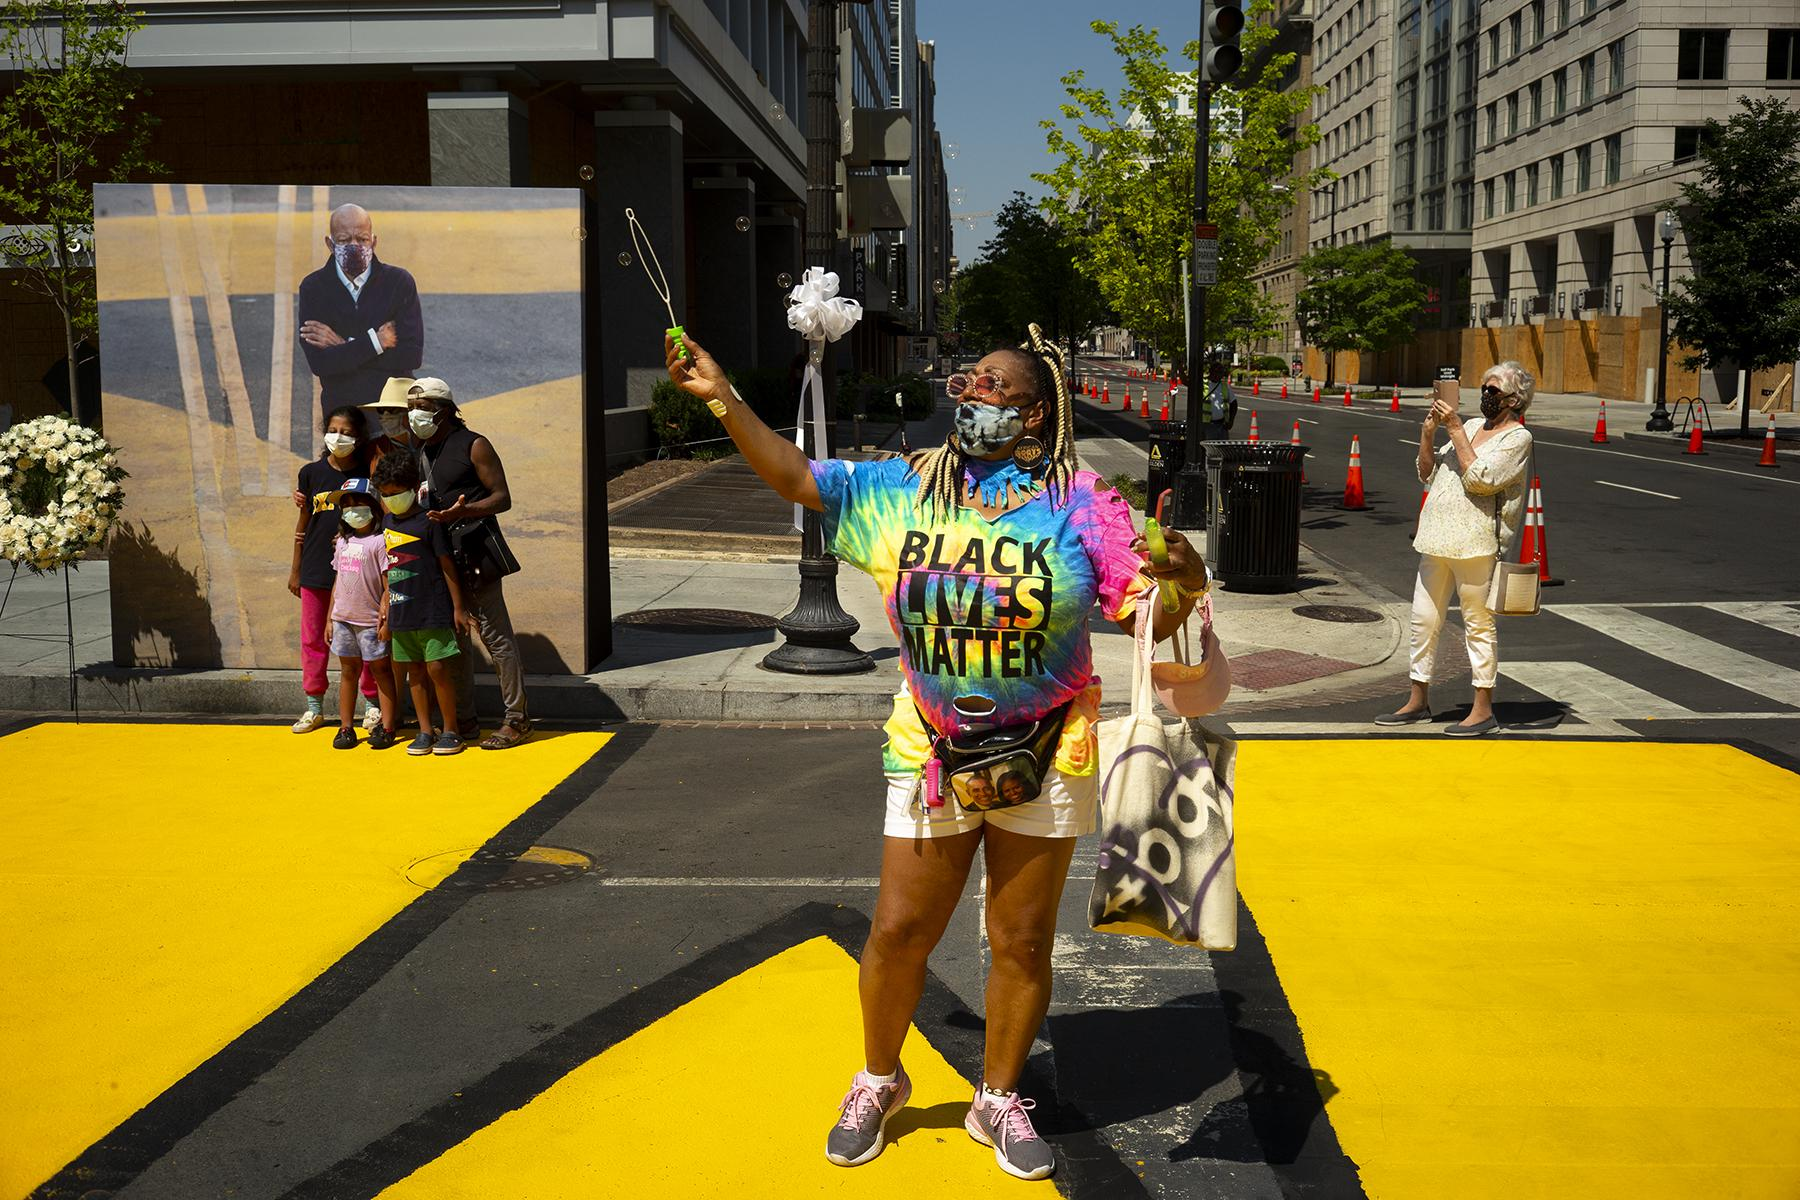 Janet Purnell came down from Philadelphia to be apart of the celebration of John Lewis at Black Lives Matter Plaza in Washington D.C. on July 27.